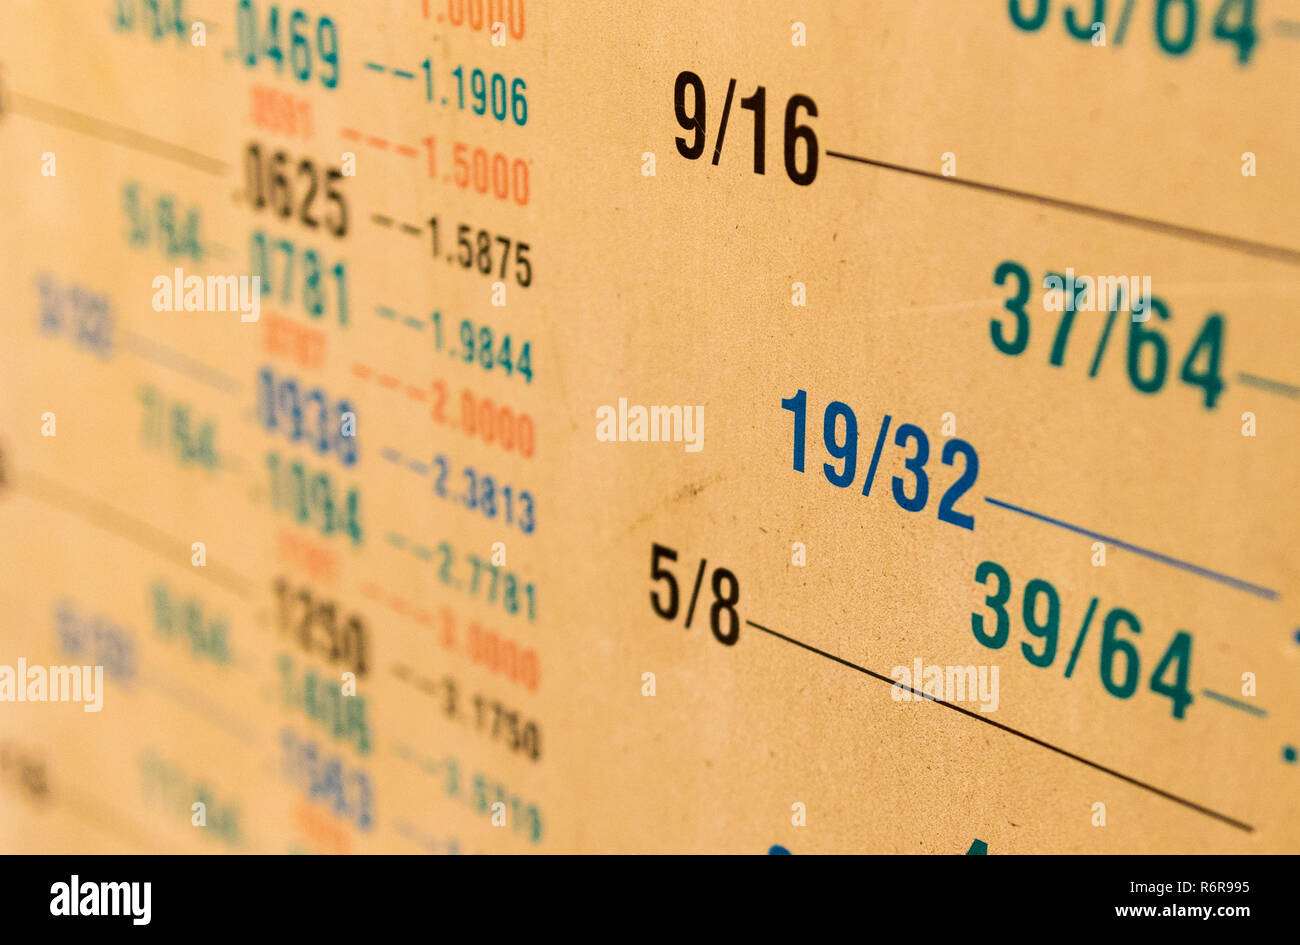 Fractional to decimal measurement size conversion chart yellowed from age Stock Photo